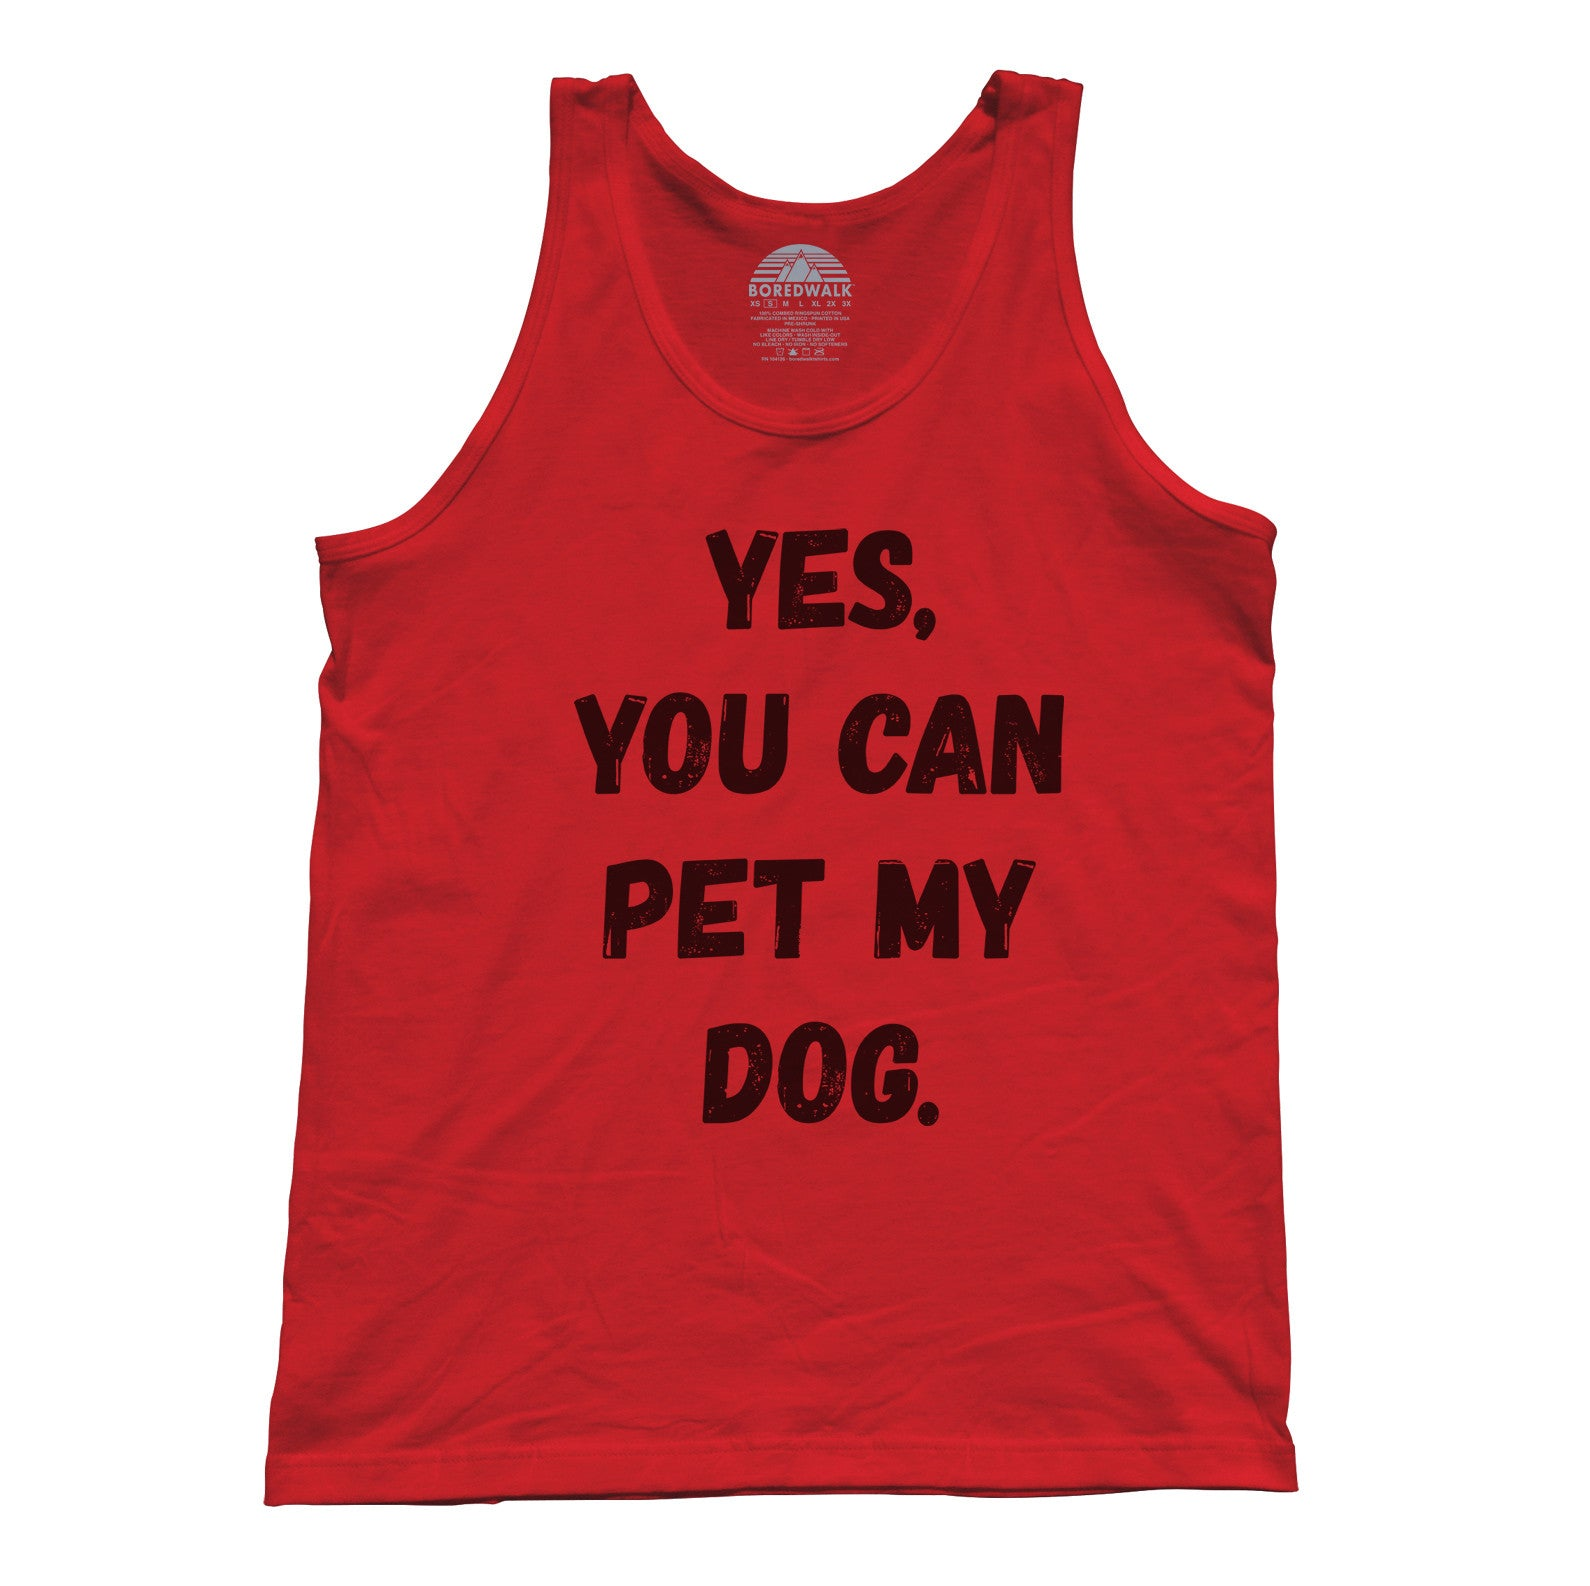 26c4b39b37 Unisex Yes You Can Pet My Dog Tank Top - Funny Dog Owner Shirt ...